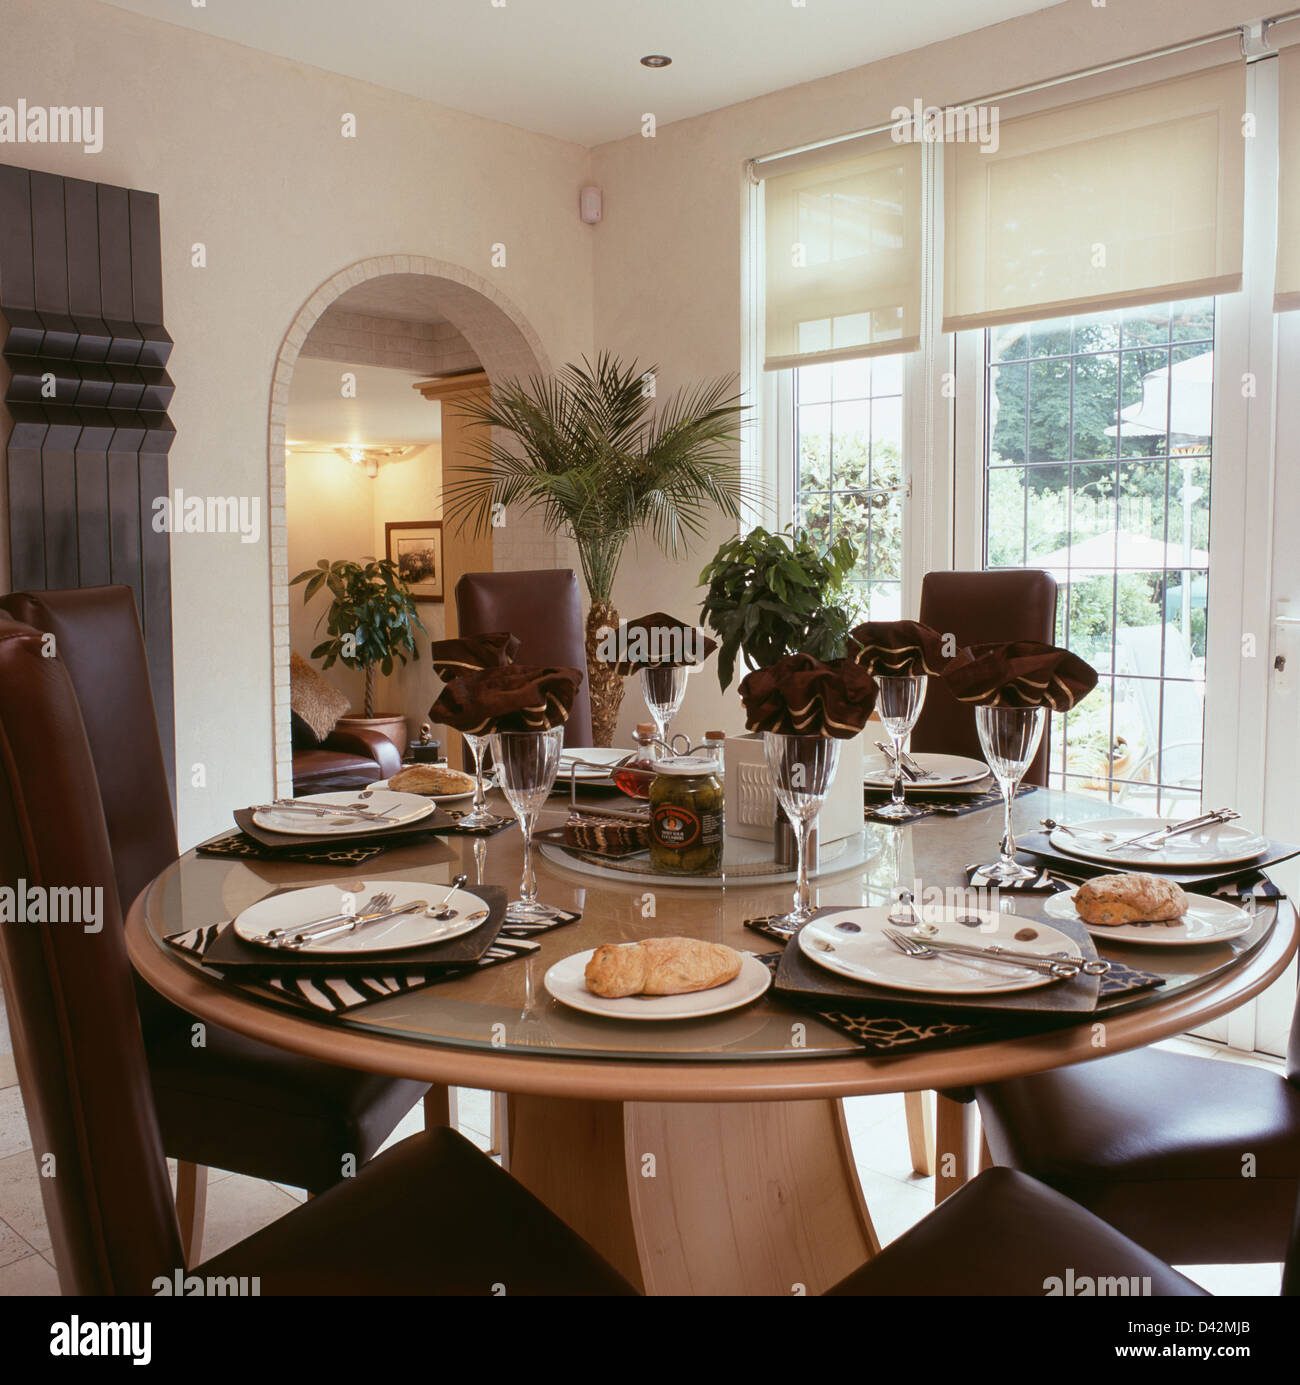 modern circular table set for lunch in traditional dining room modern circular table set for lunch in traditional dining room with white blinds on the window